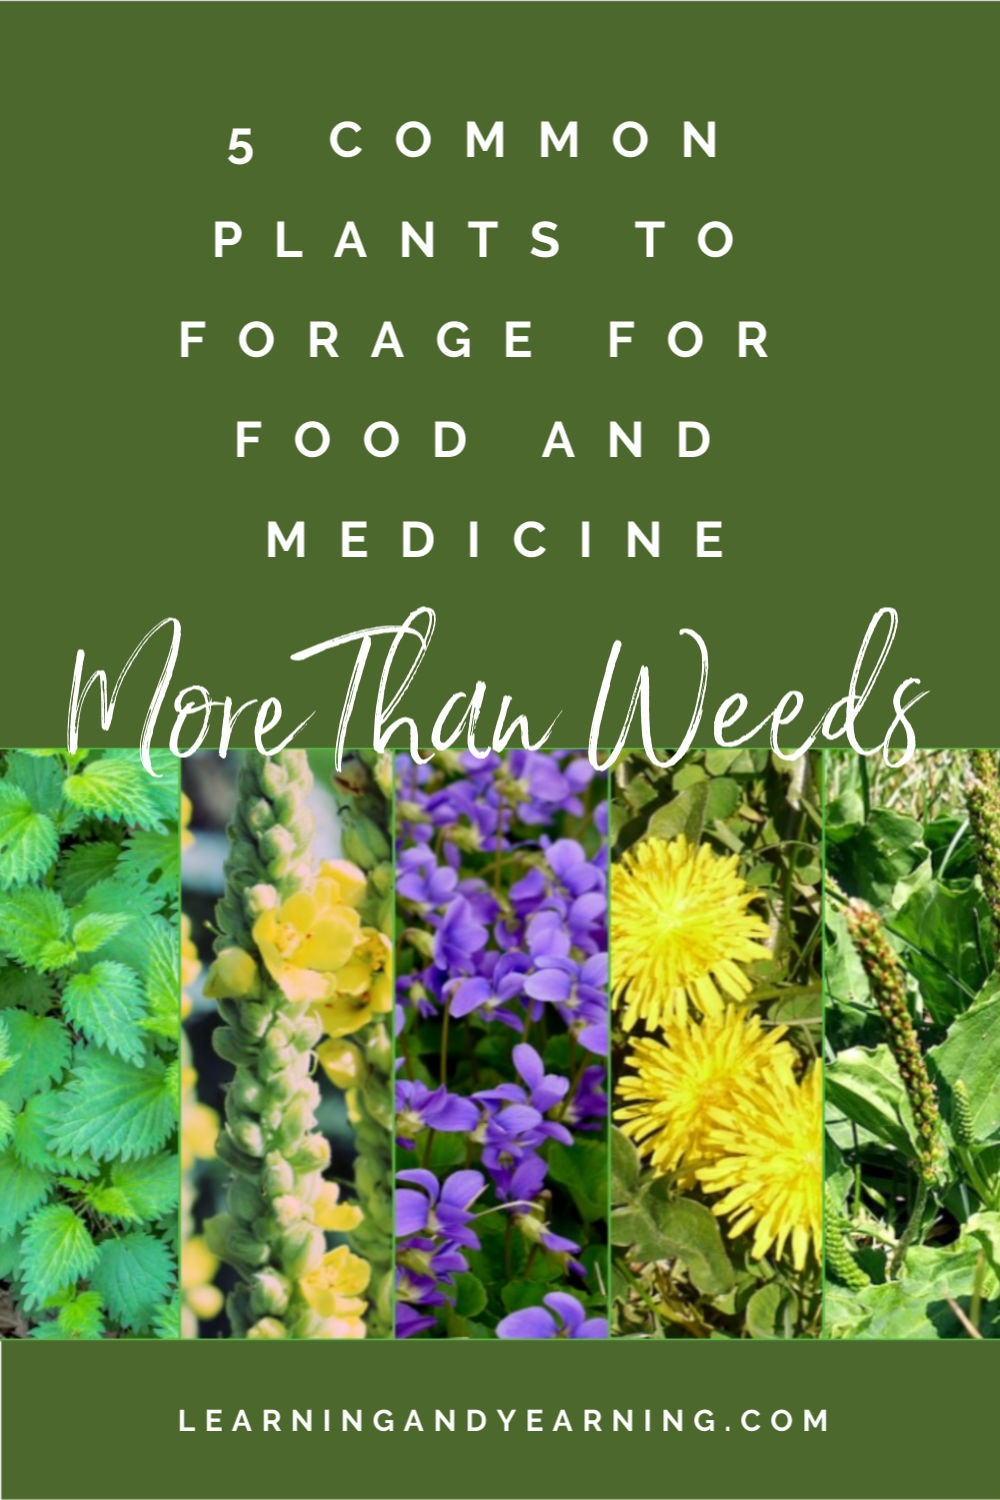 These 5 plants are more than weeds, they are food and medicine!